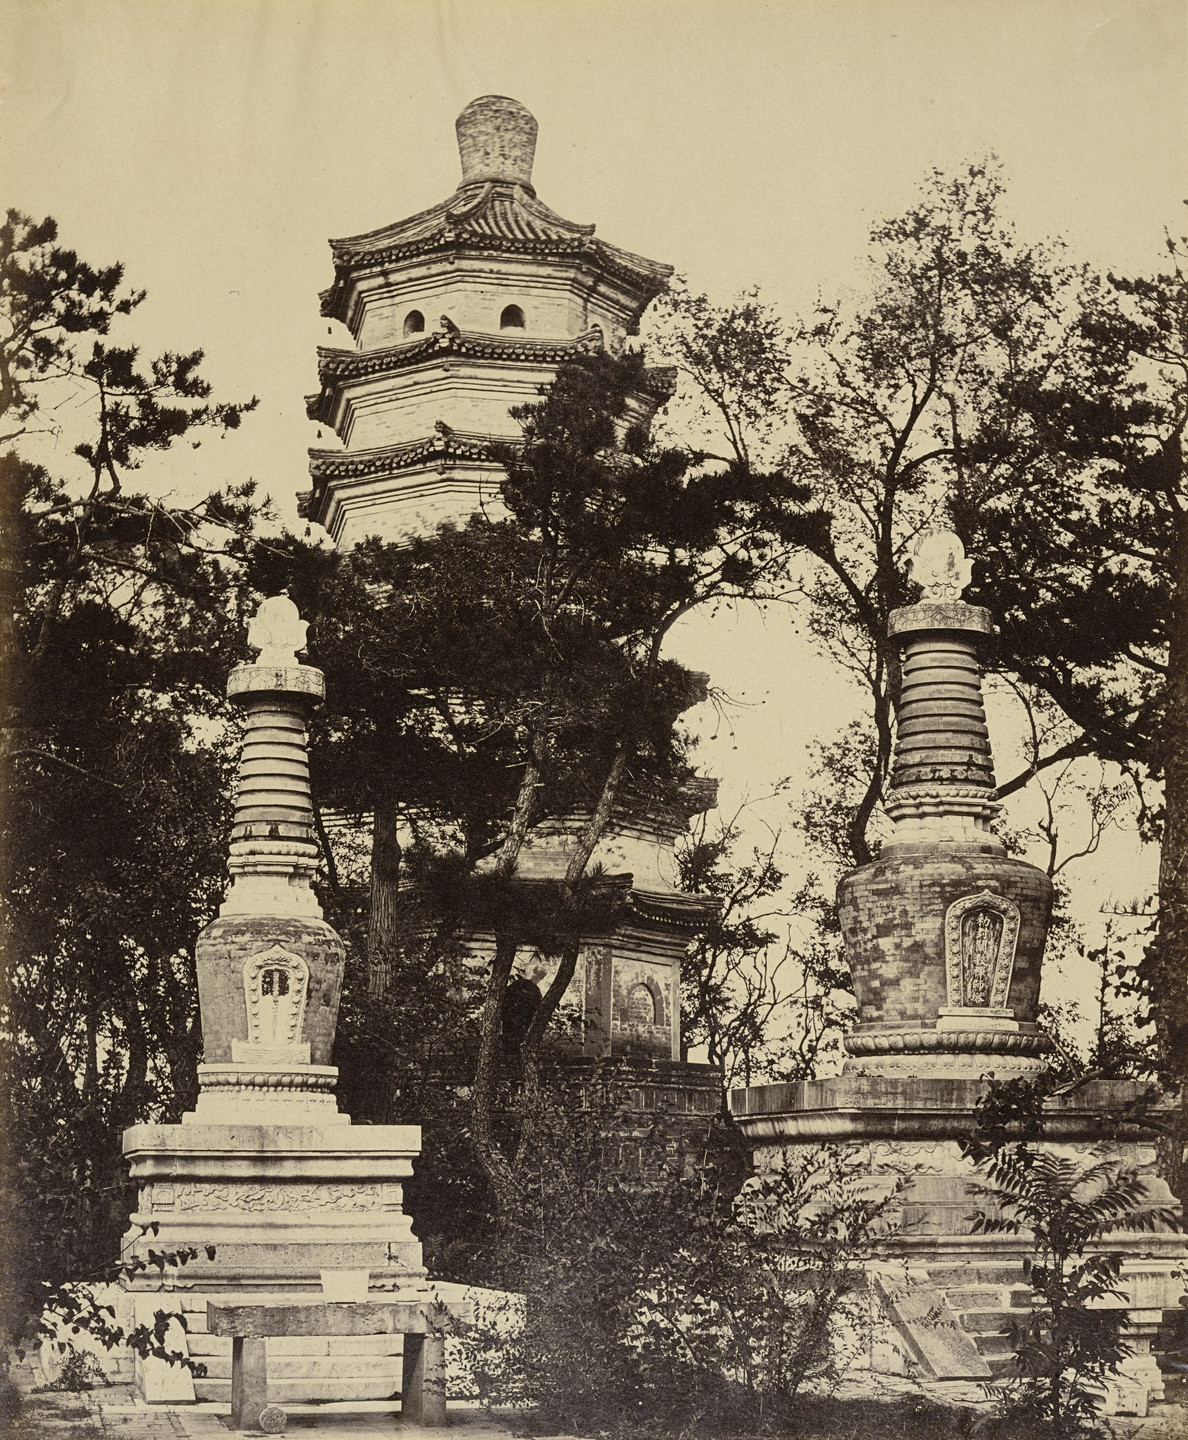 Felice Beato. Pagoda Up in the Hill of Summer Palace Yuen Ming Yuen, Pekin, October 18th, 1860. 1860